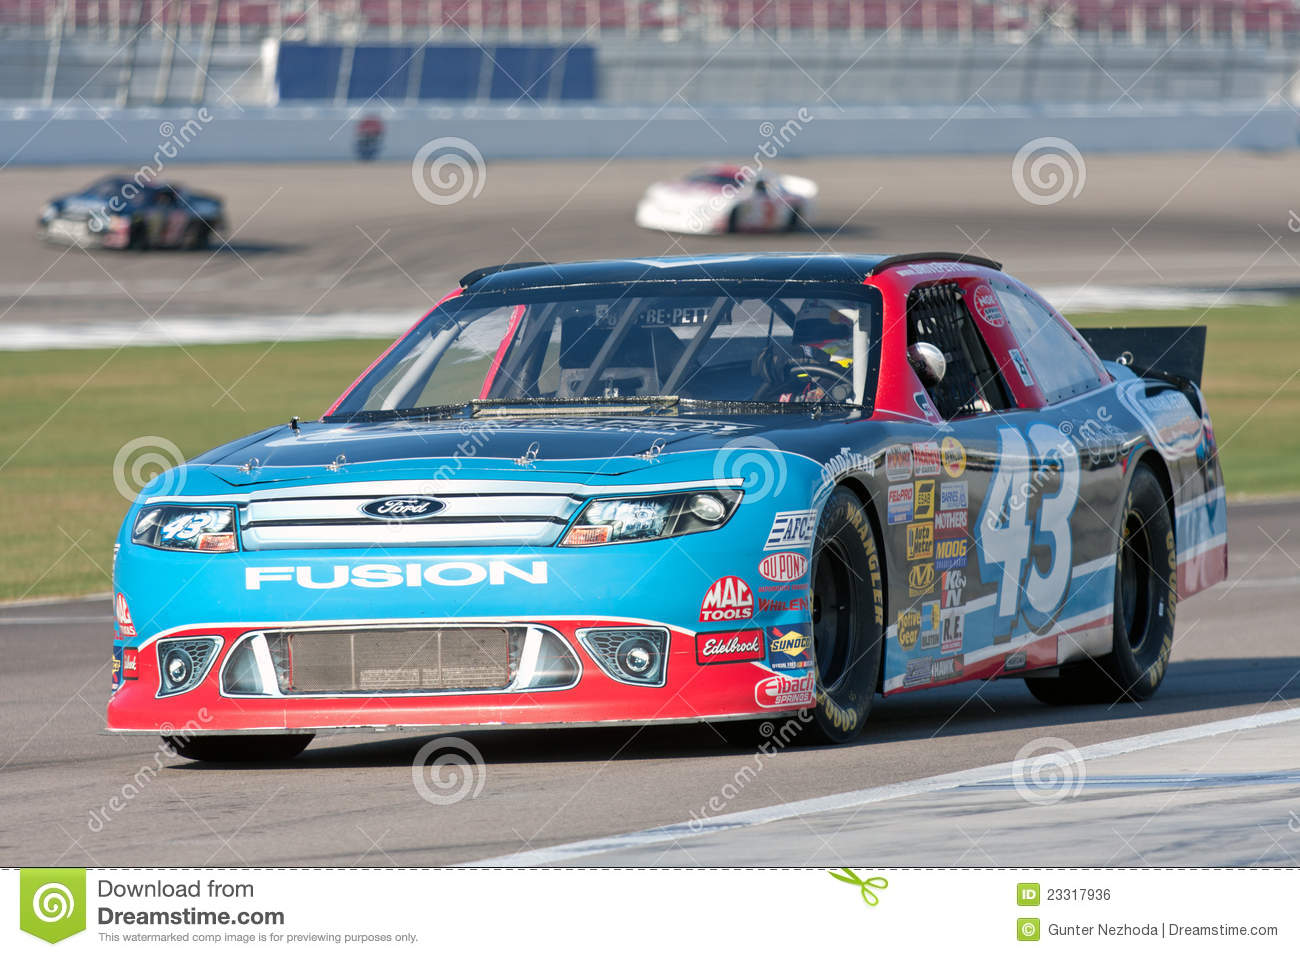 Richard Petty Racing School - kinoframe.ga - Search The Web Web SearchFind Immediate Results! · Search Multiple Engines! · Search & Lookup Results · Search Now!Services: Search Multiple Engines, Find Fast Results, Search & Lookup Results.